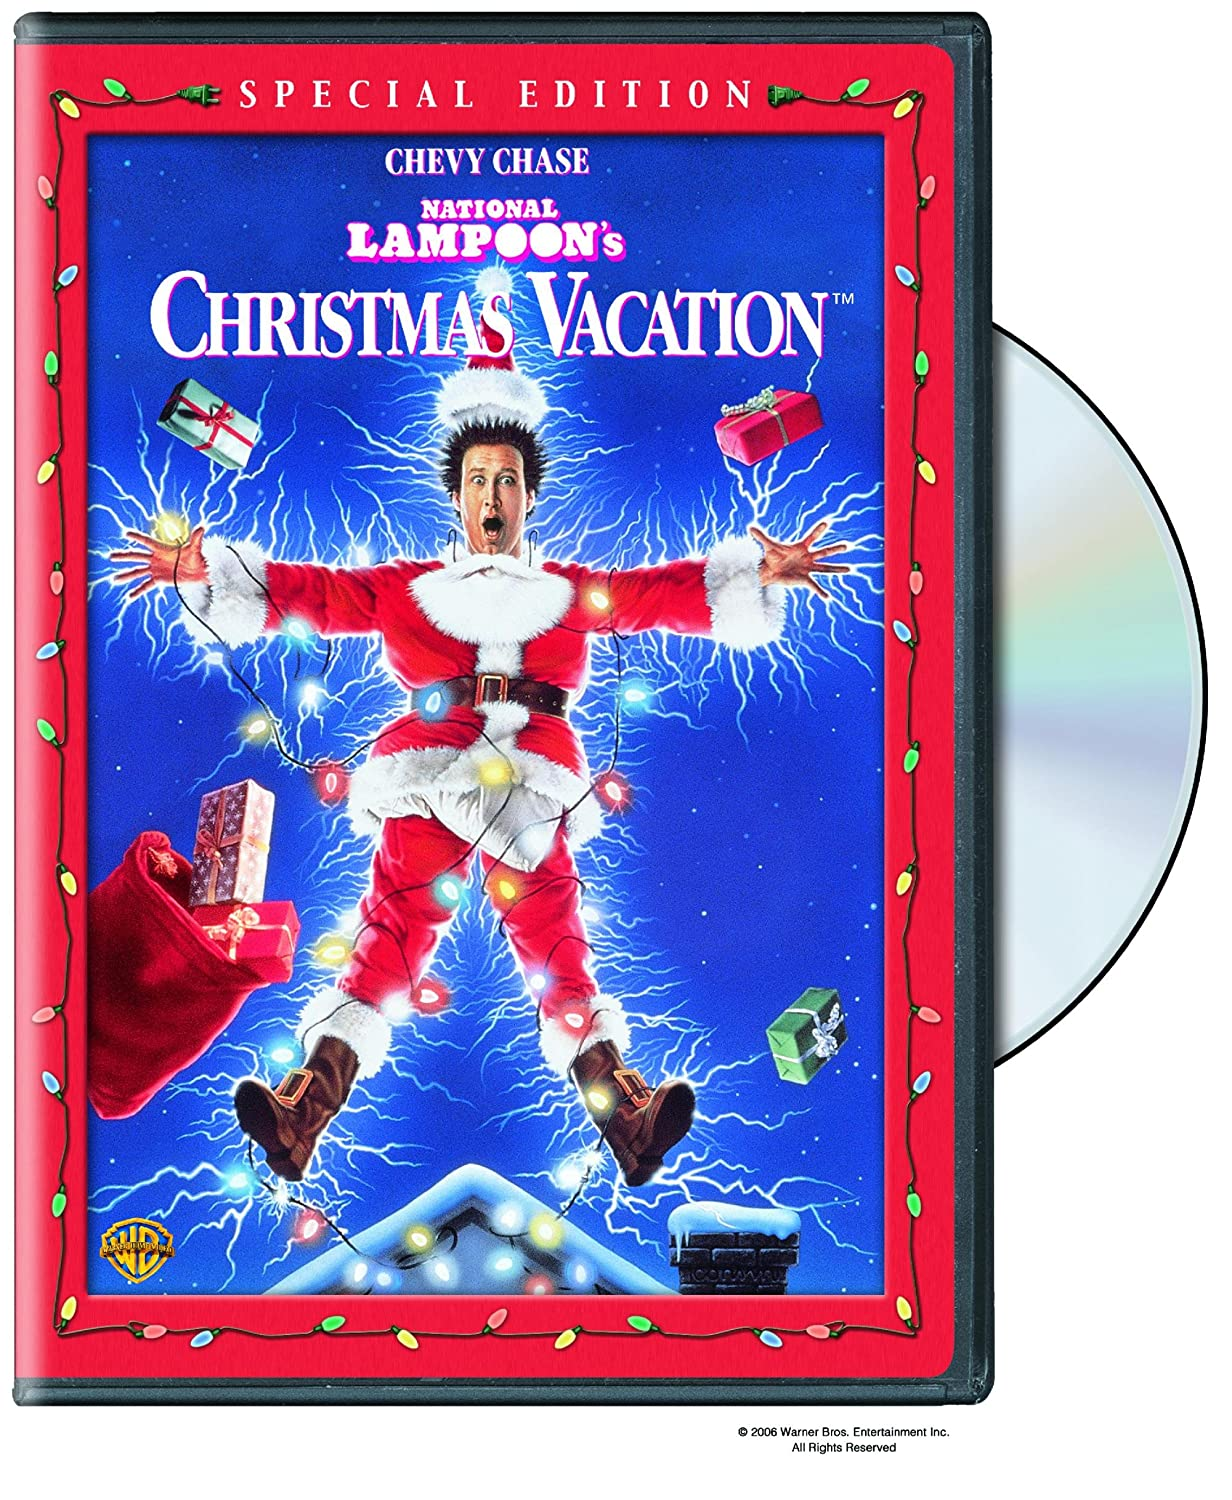 Amazon.com: National Lampoon's Christmas Vacation (Special Edition ...